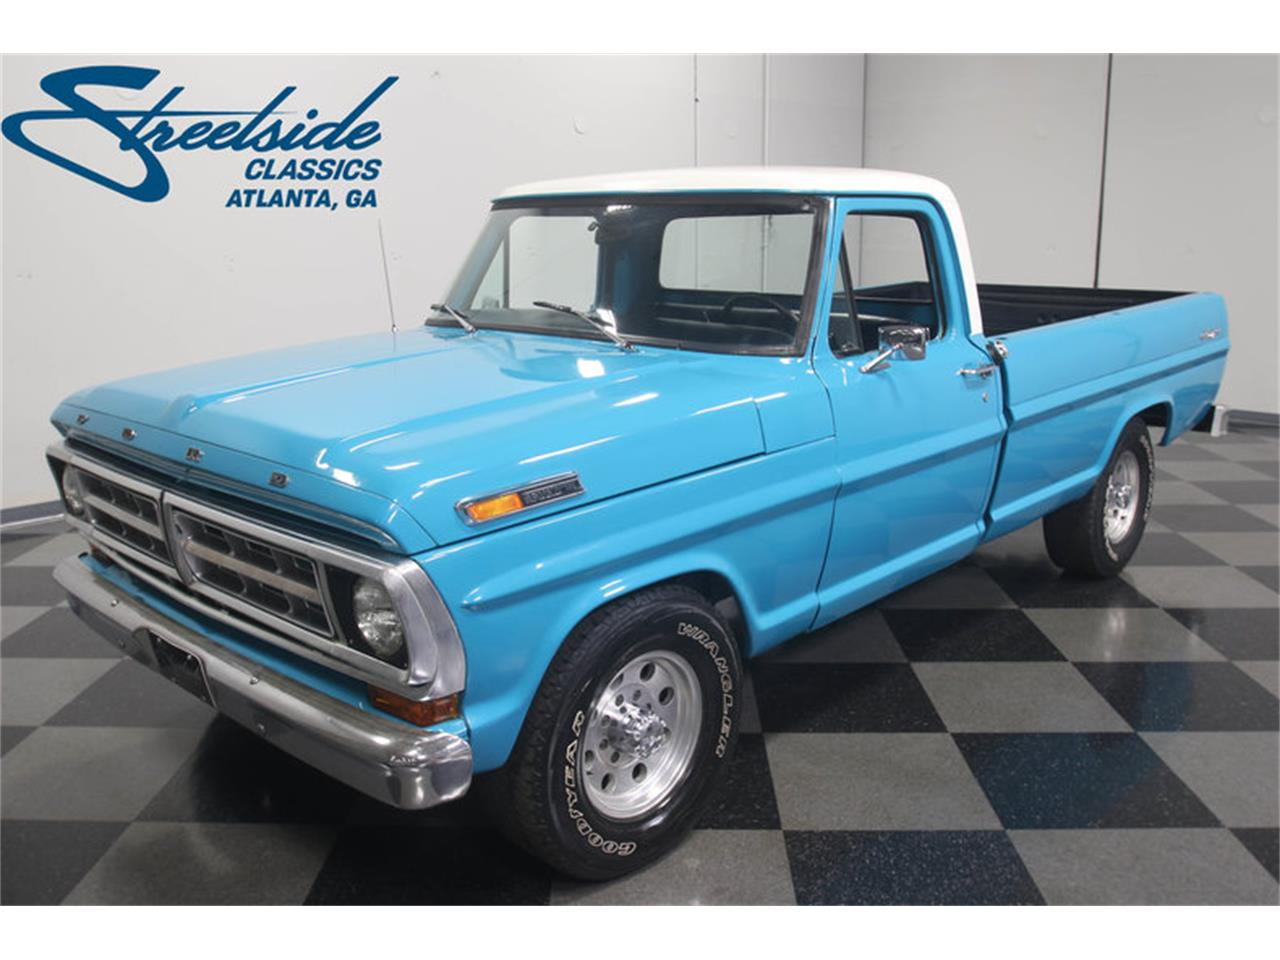 Large Picture of Classic 1972 Ford F-250 Ranger located in Georgia - $14,995.00 - MO82